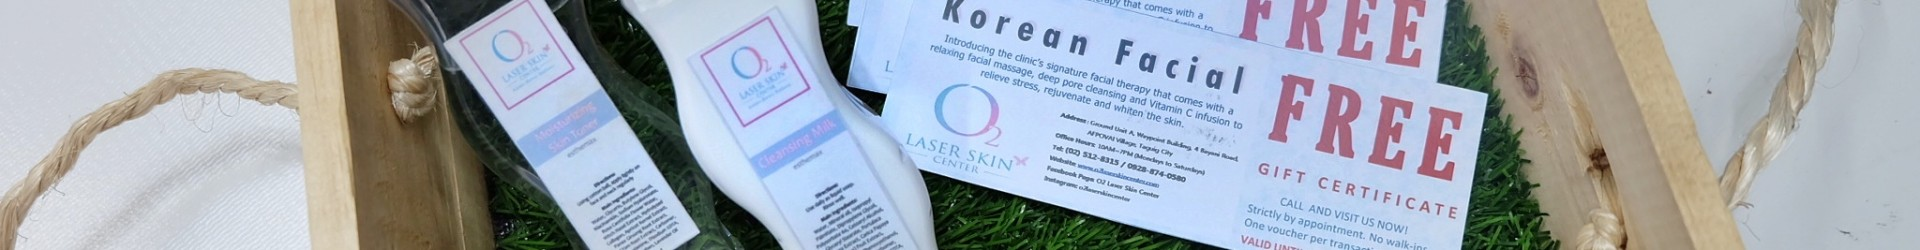 O2 Laser Skin Center – O2 Korean Facial Therapy